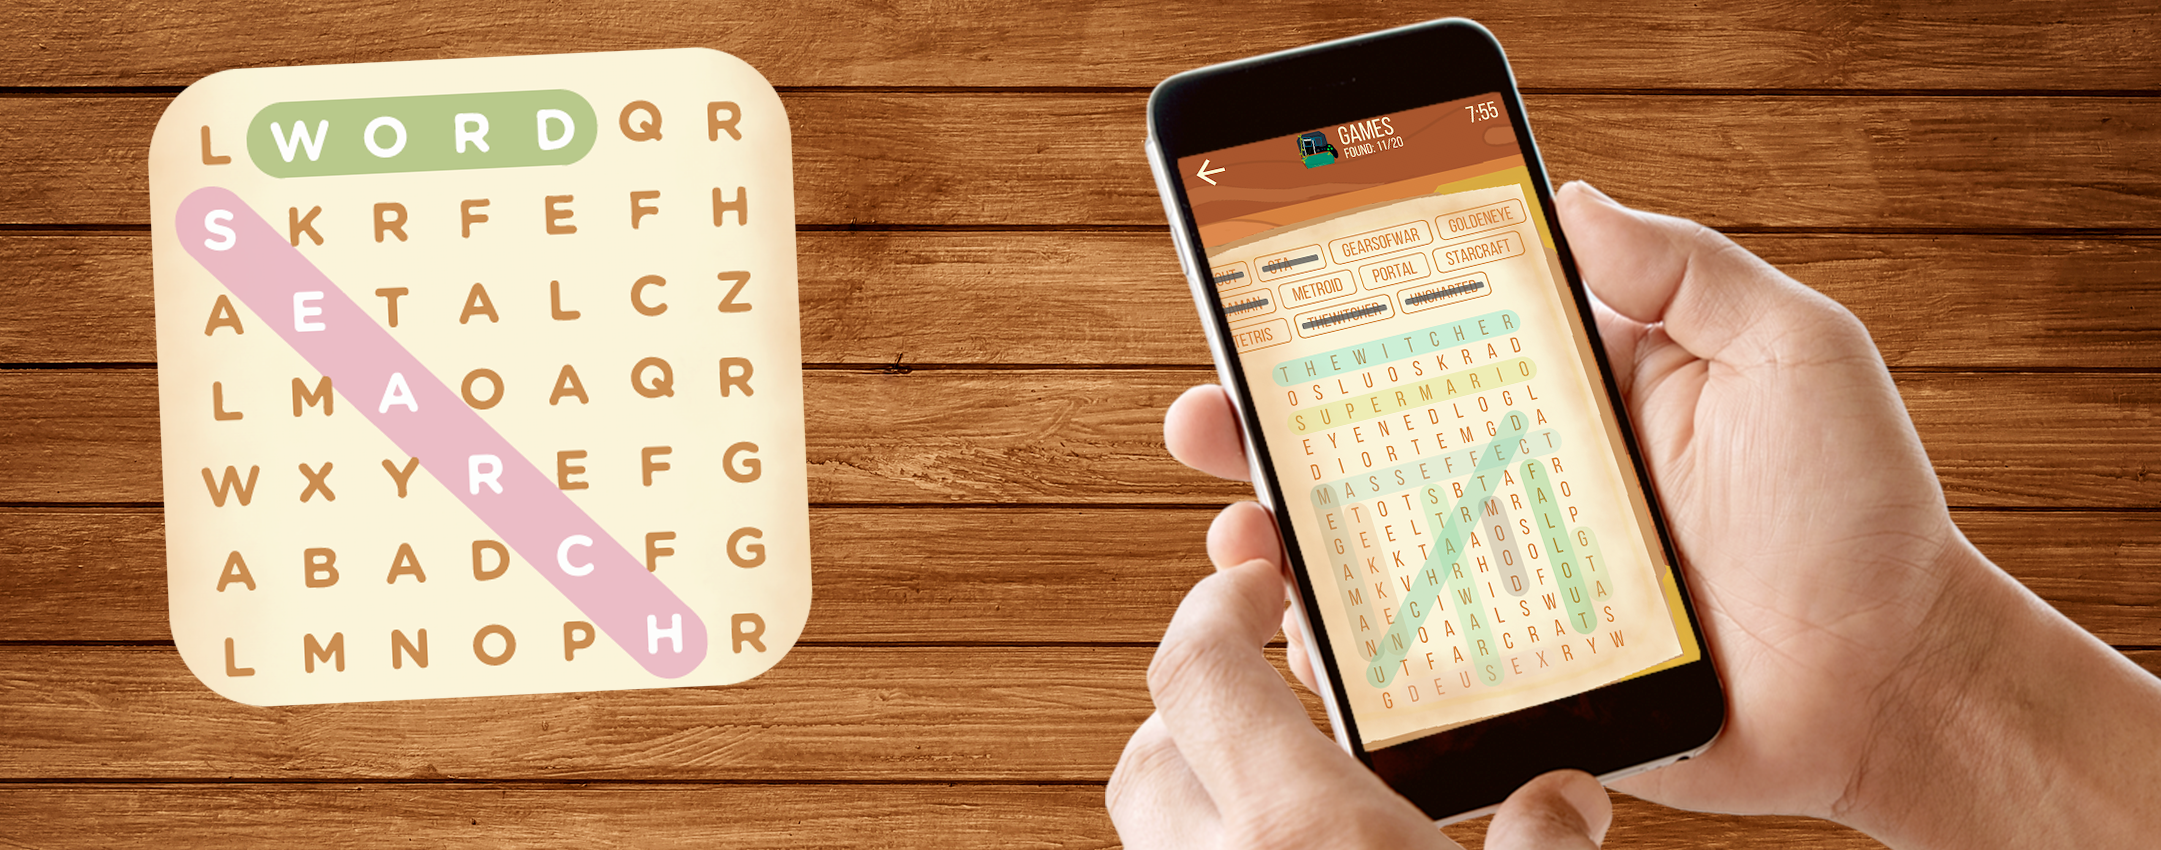 Wizard – Word Search